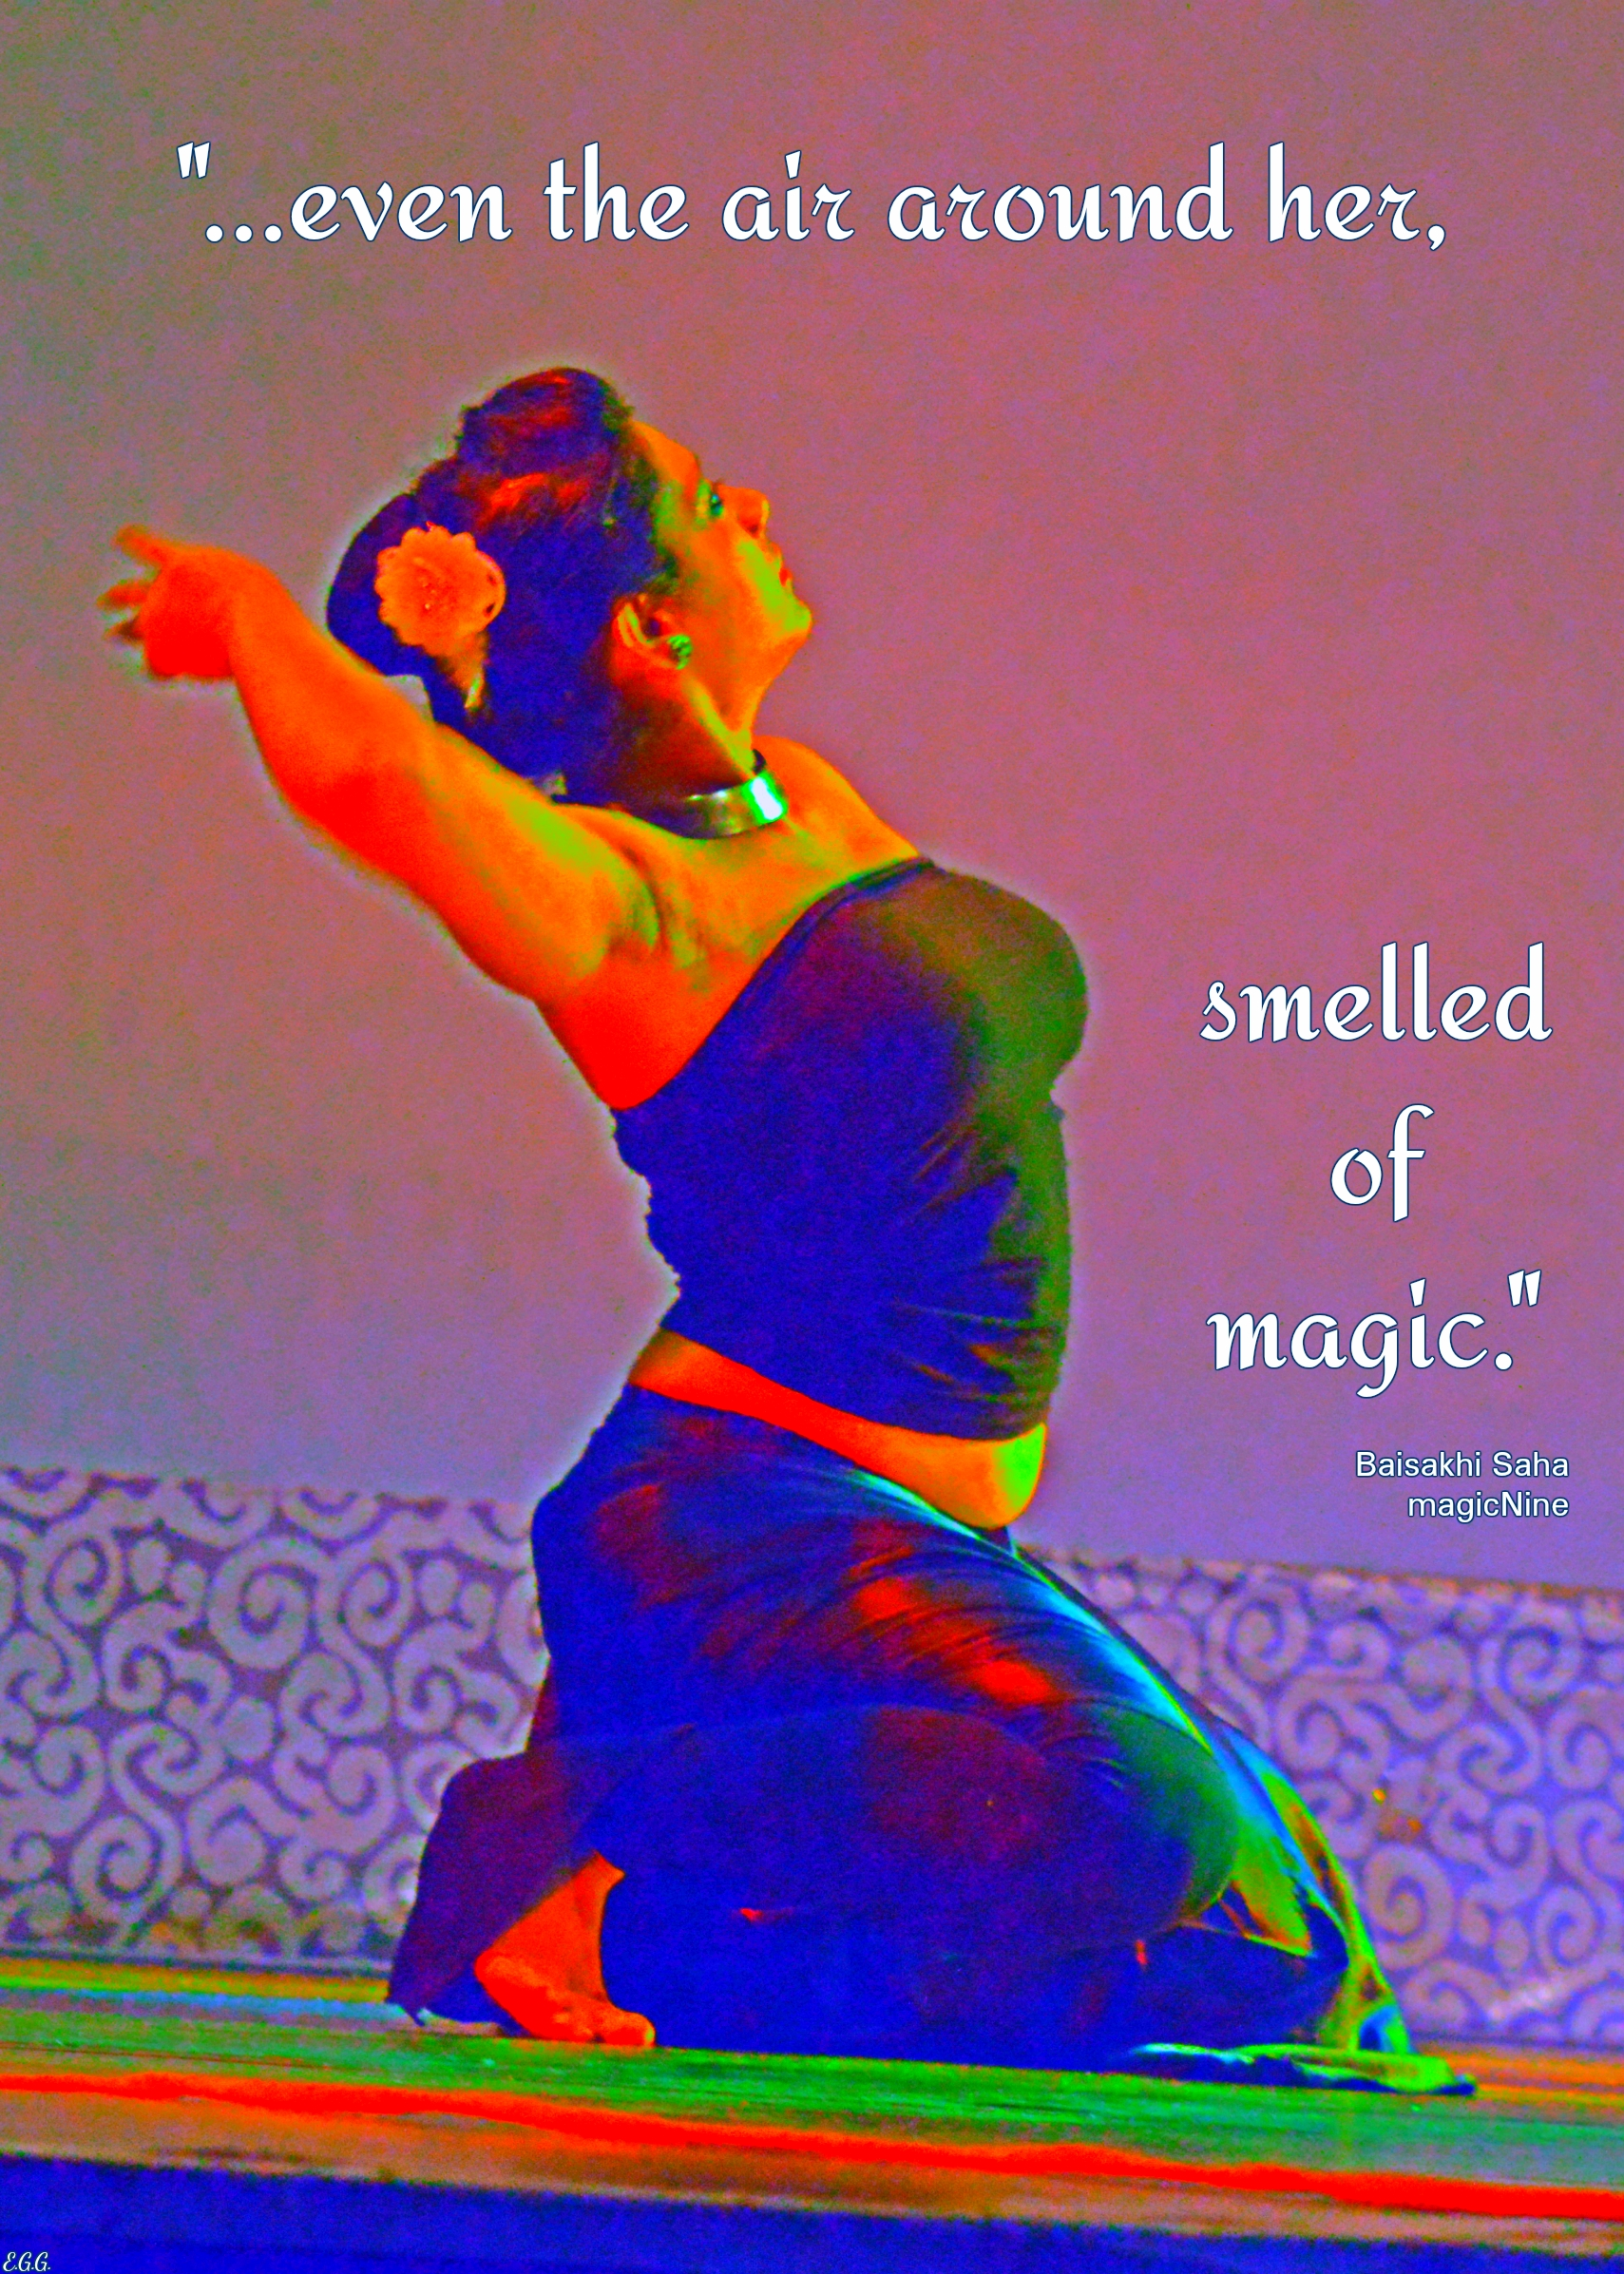 even the air around her, smelled of magic